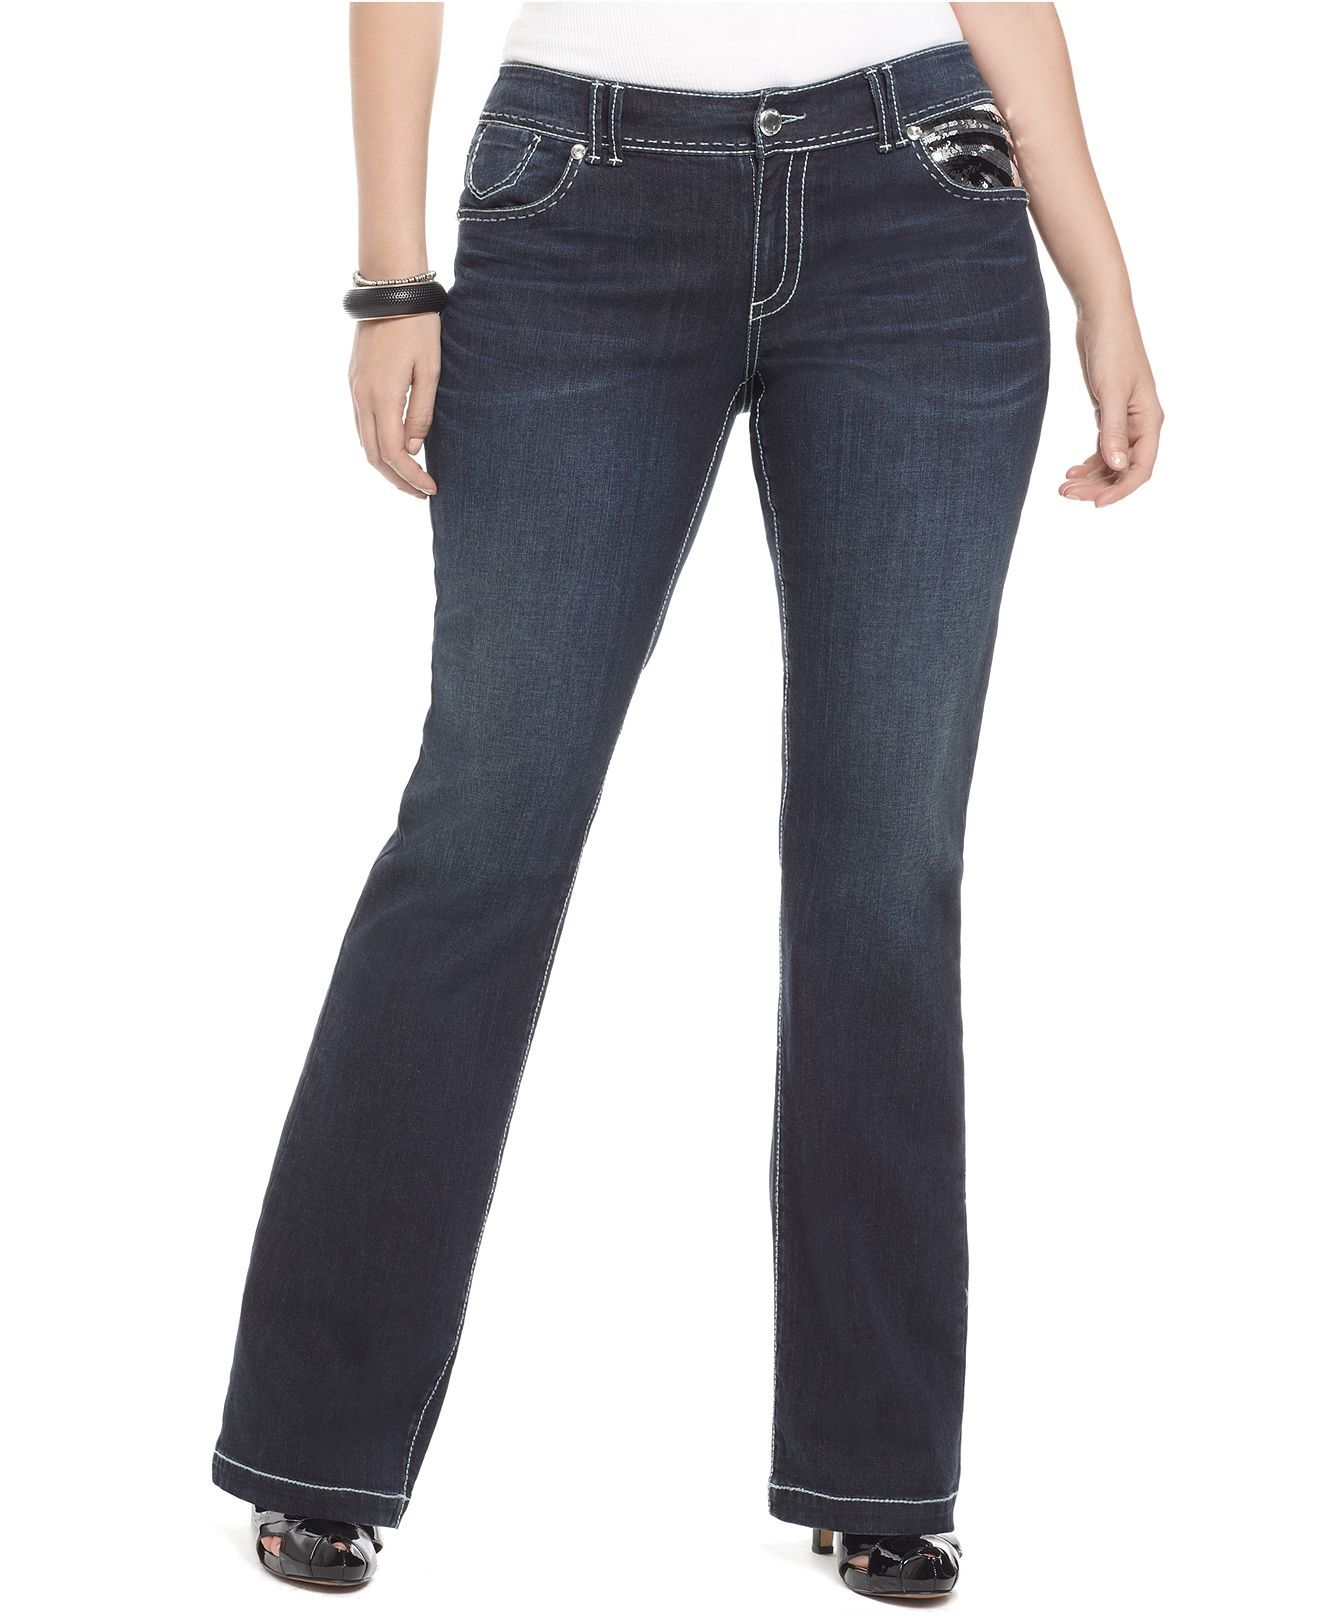 28be2117b63 Seven7 Jeans Plus Size Jeans